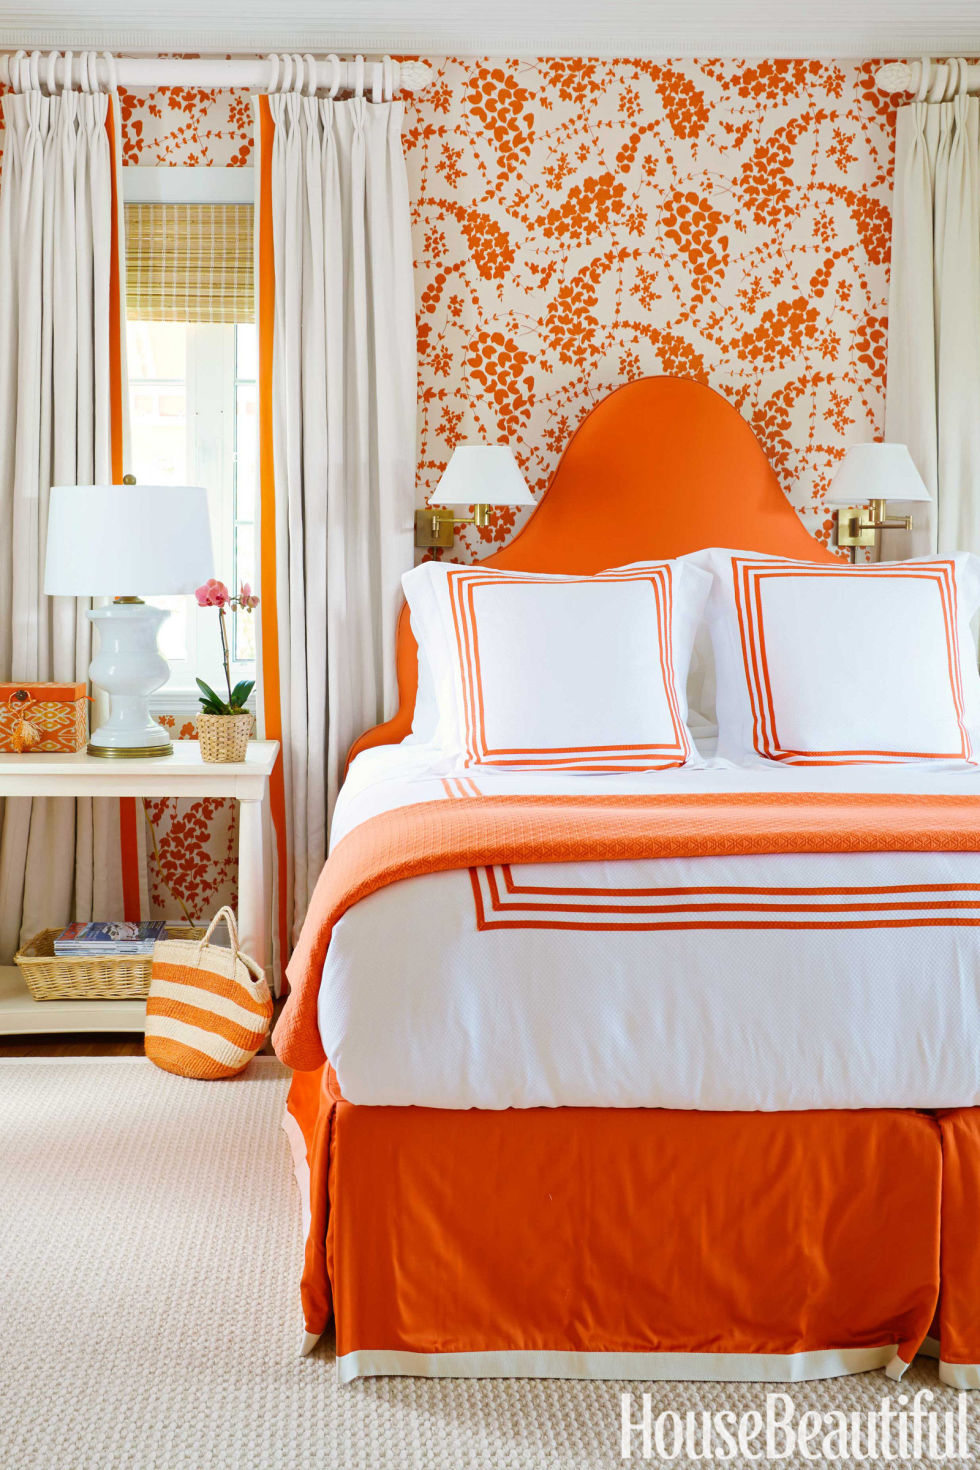 Room Color Meanings color meanings - what different colors mean